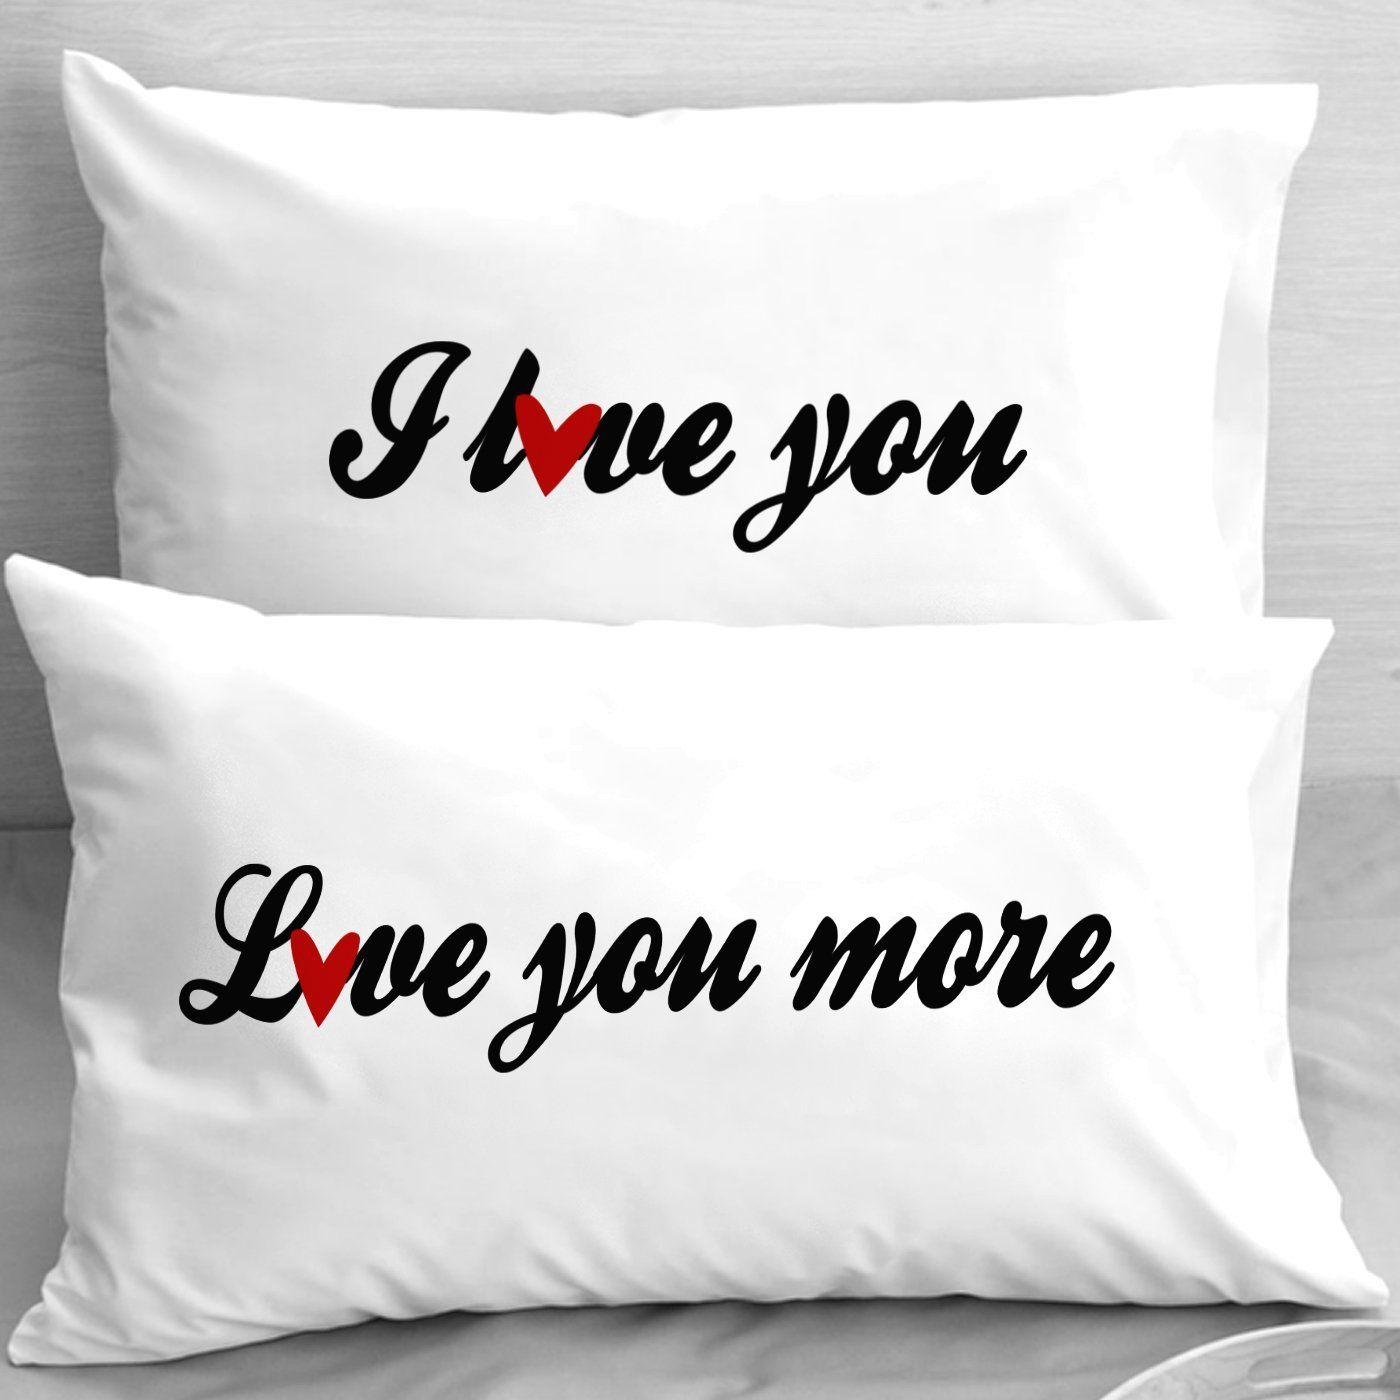 Romantic Bedroom For Her Amazoncom I Love You Love You More Pillow Cases For Couples